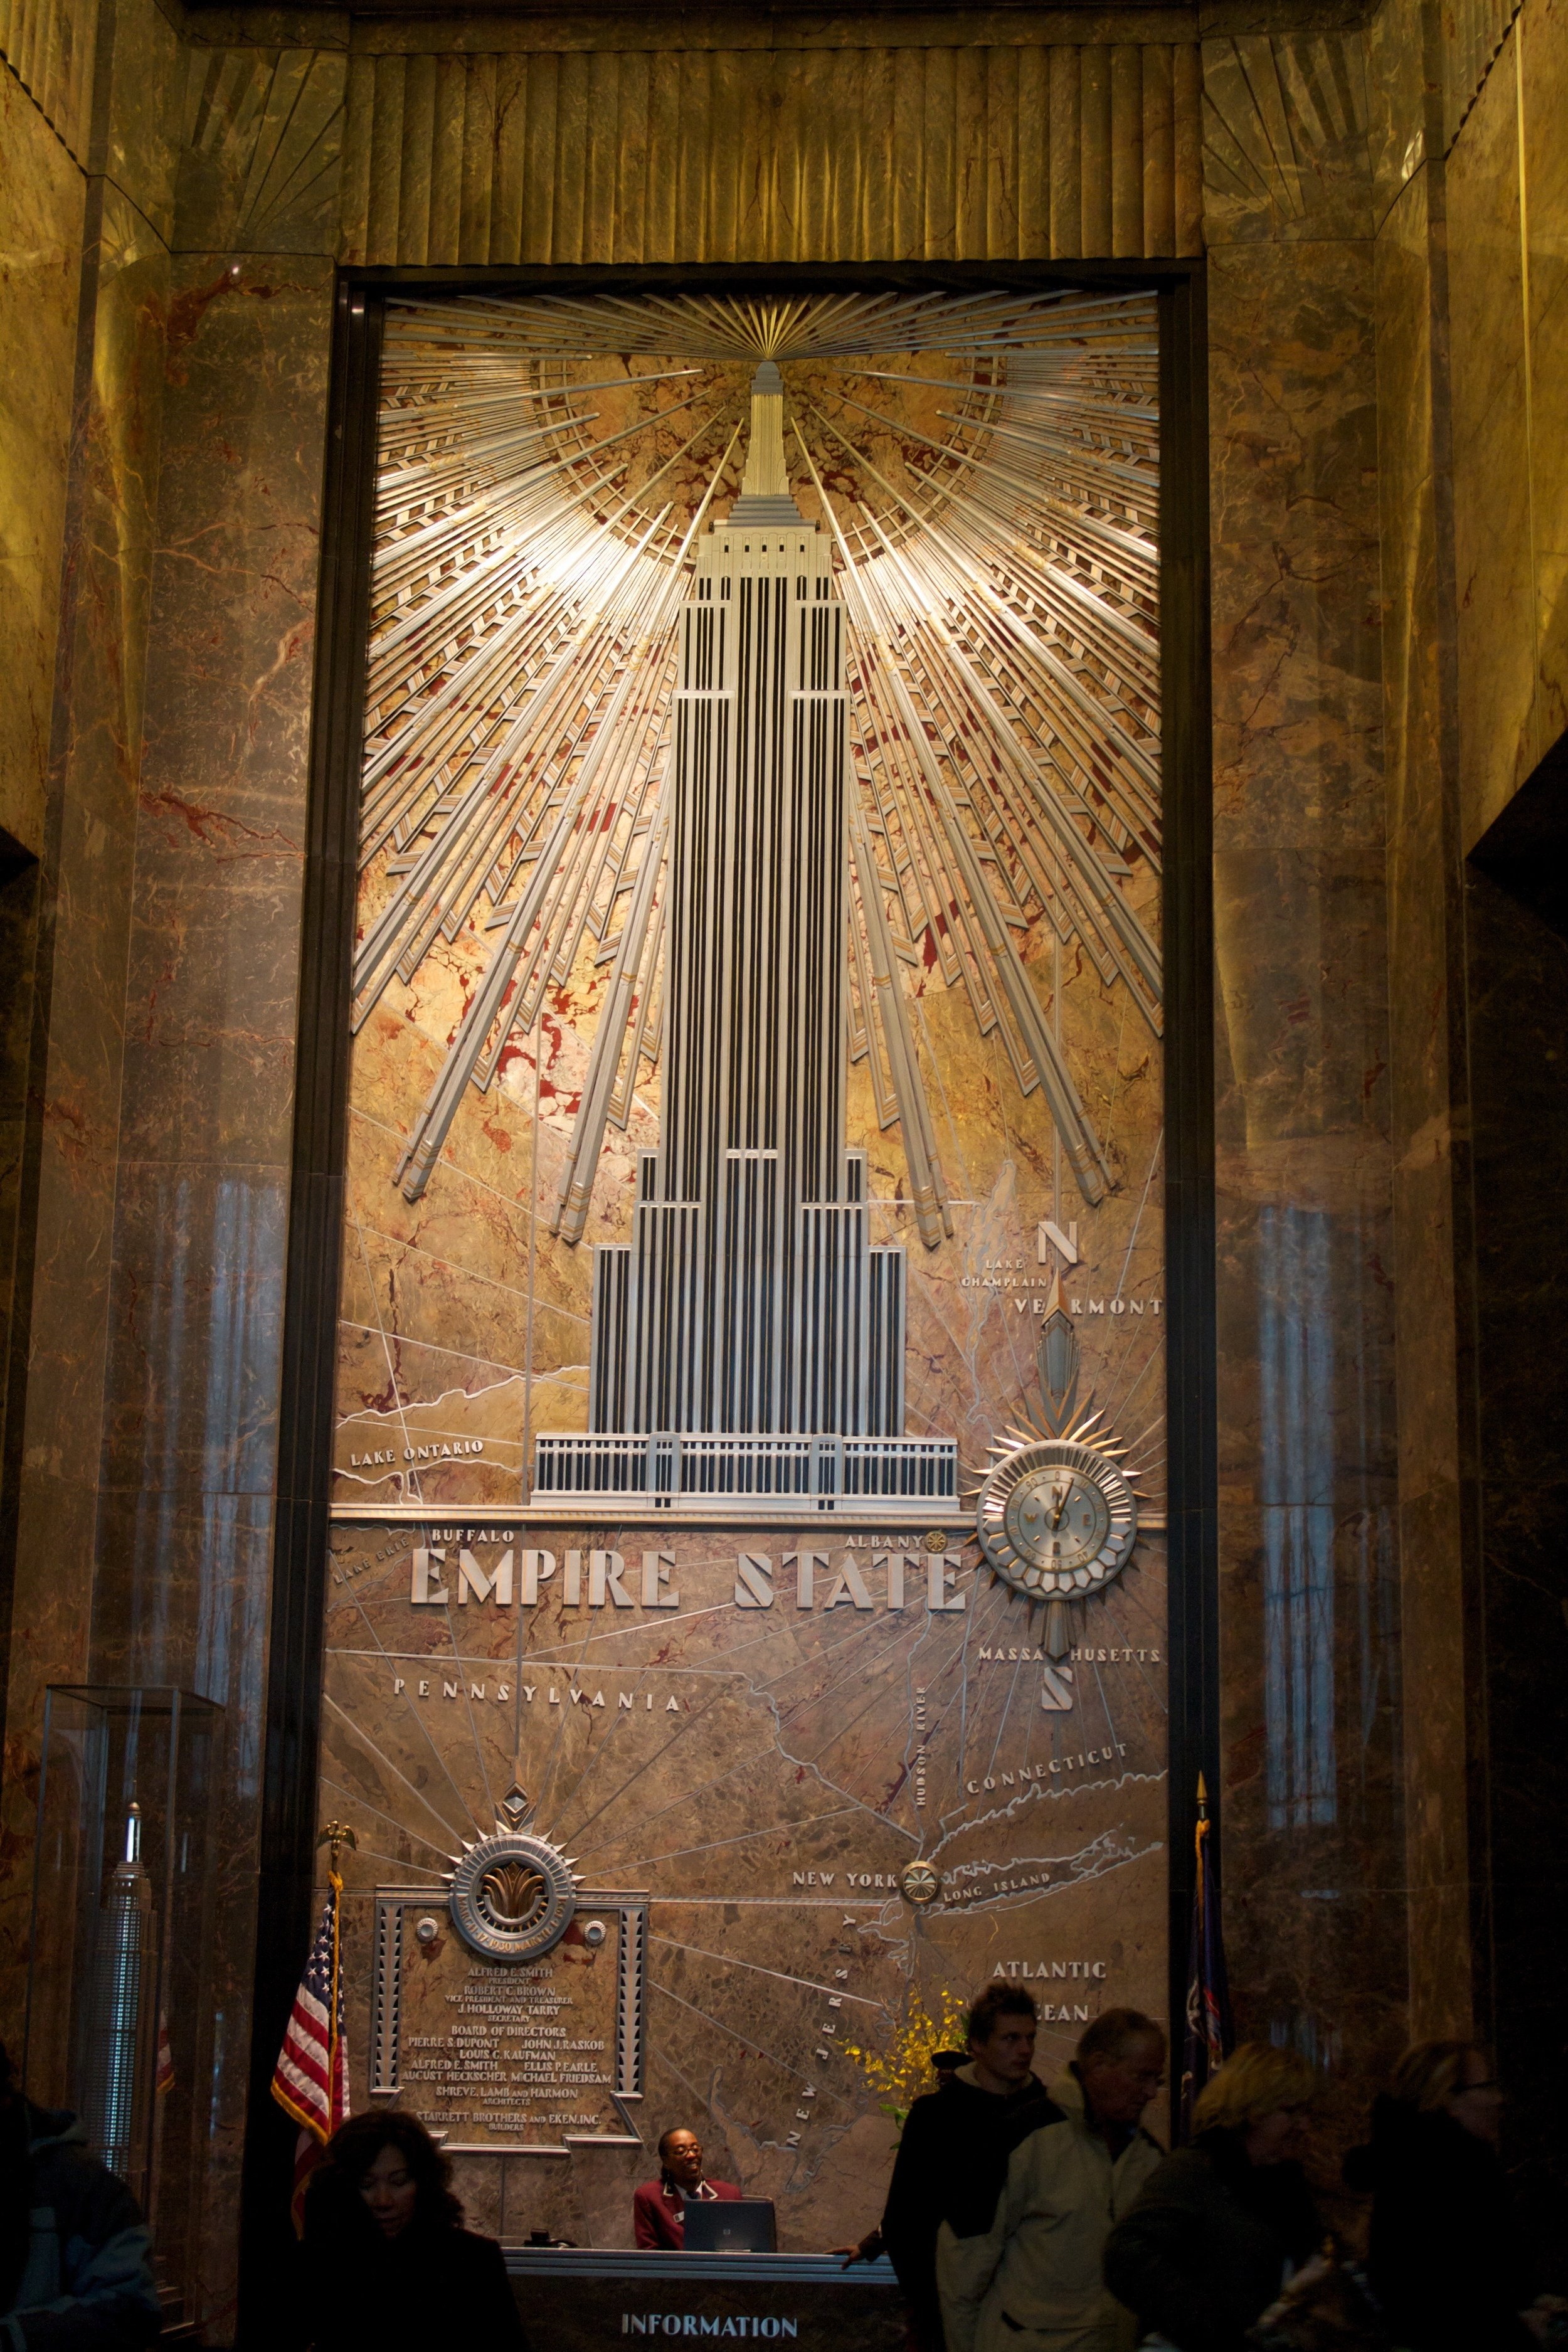 The Empire State Building is one of the most iconic New York City outdoor sights. Don't miss it!